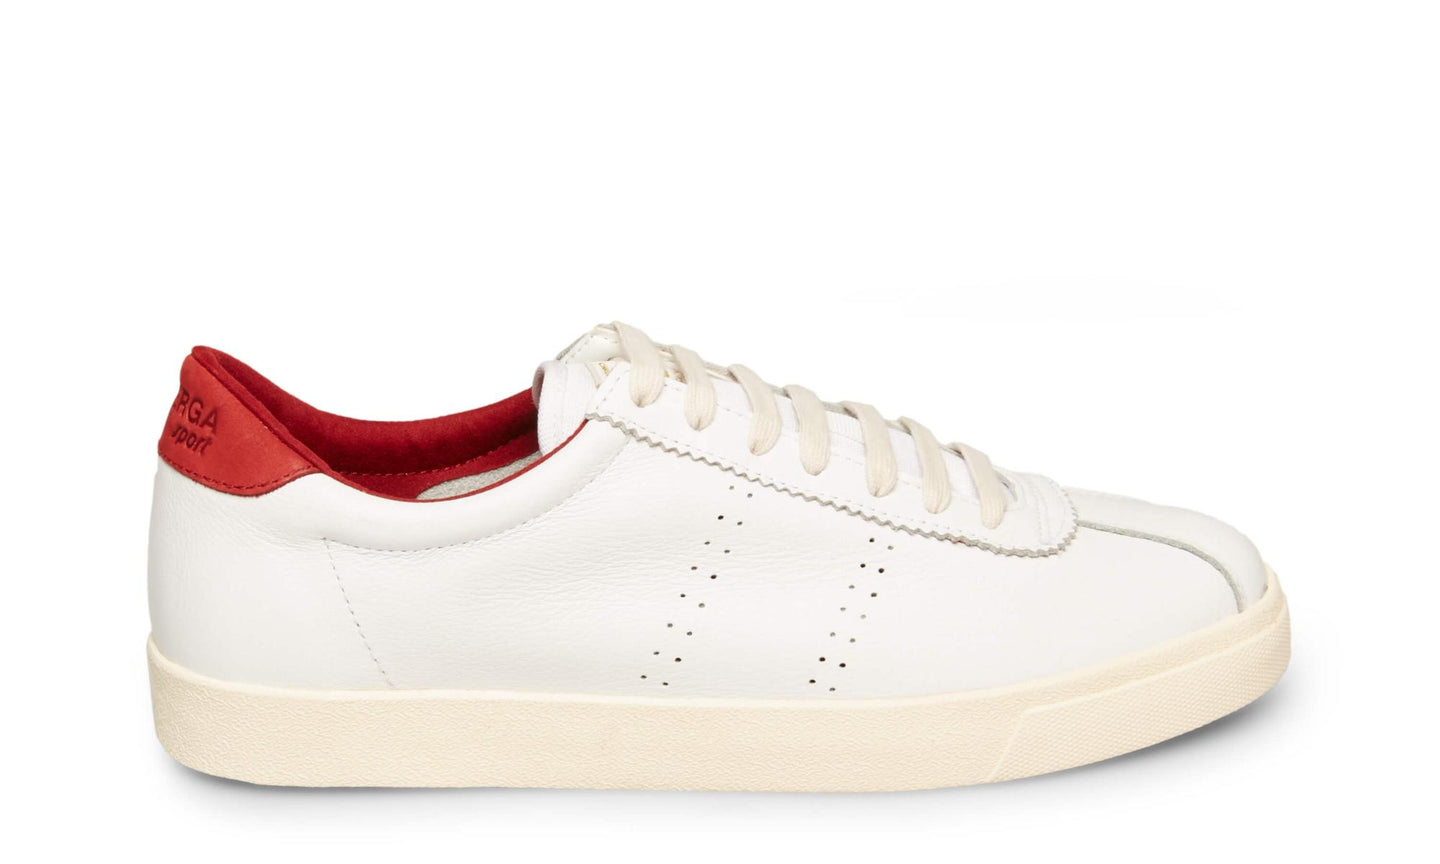 2843 COMFLEAU WHITE RED - Men's